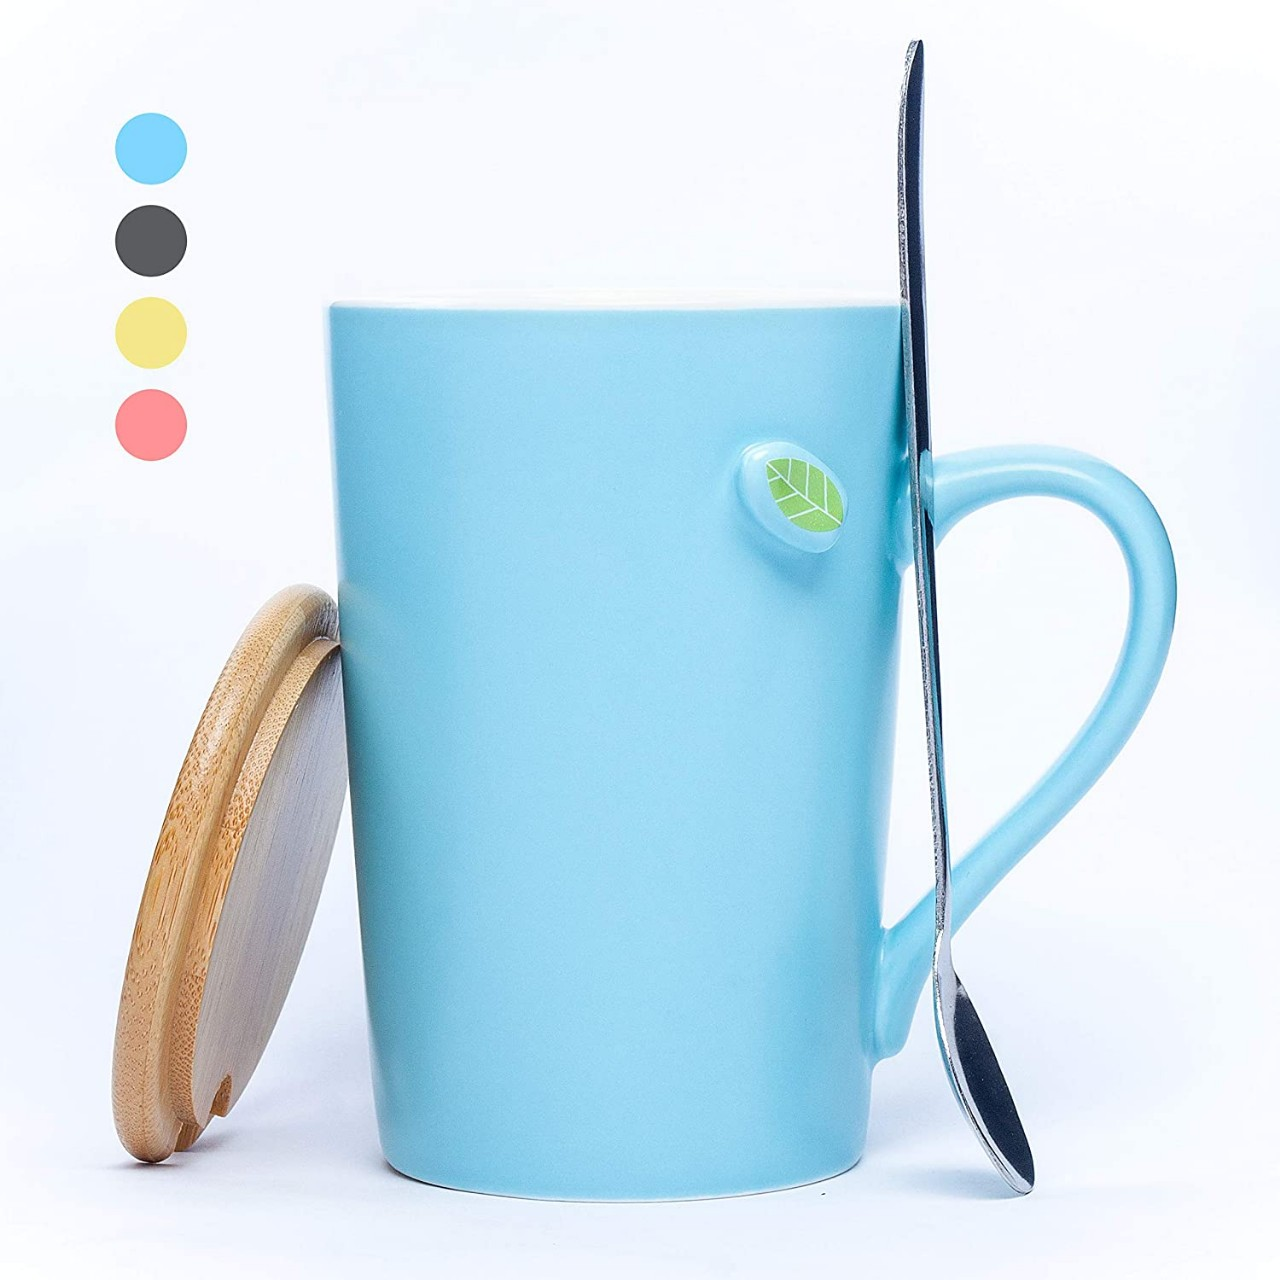 Coffee Mugs Tea Cups with Lid and Spoon 13.5 OZ, Coffee Mugs Ideal for Coffee, Tea, Cold Drinks